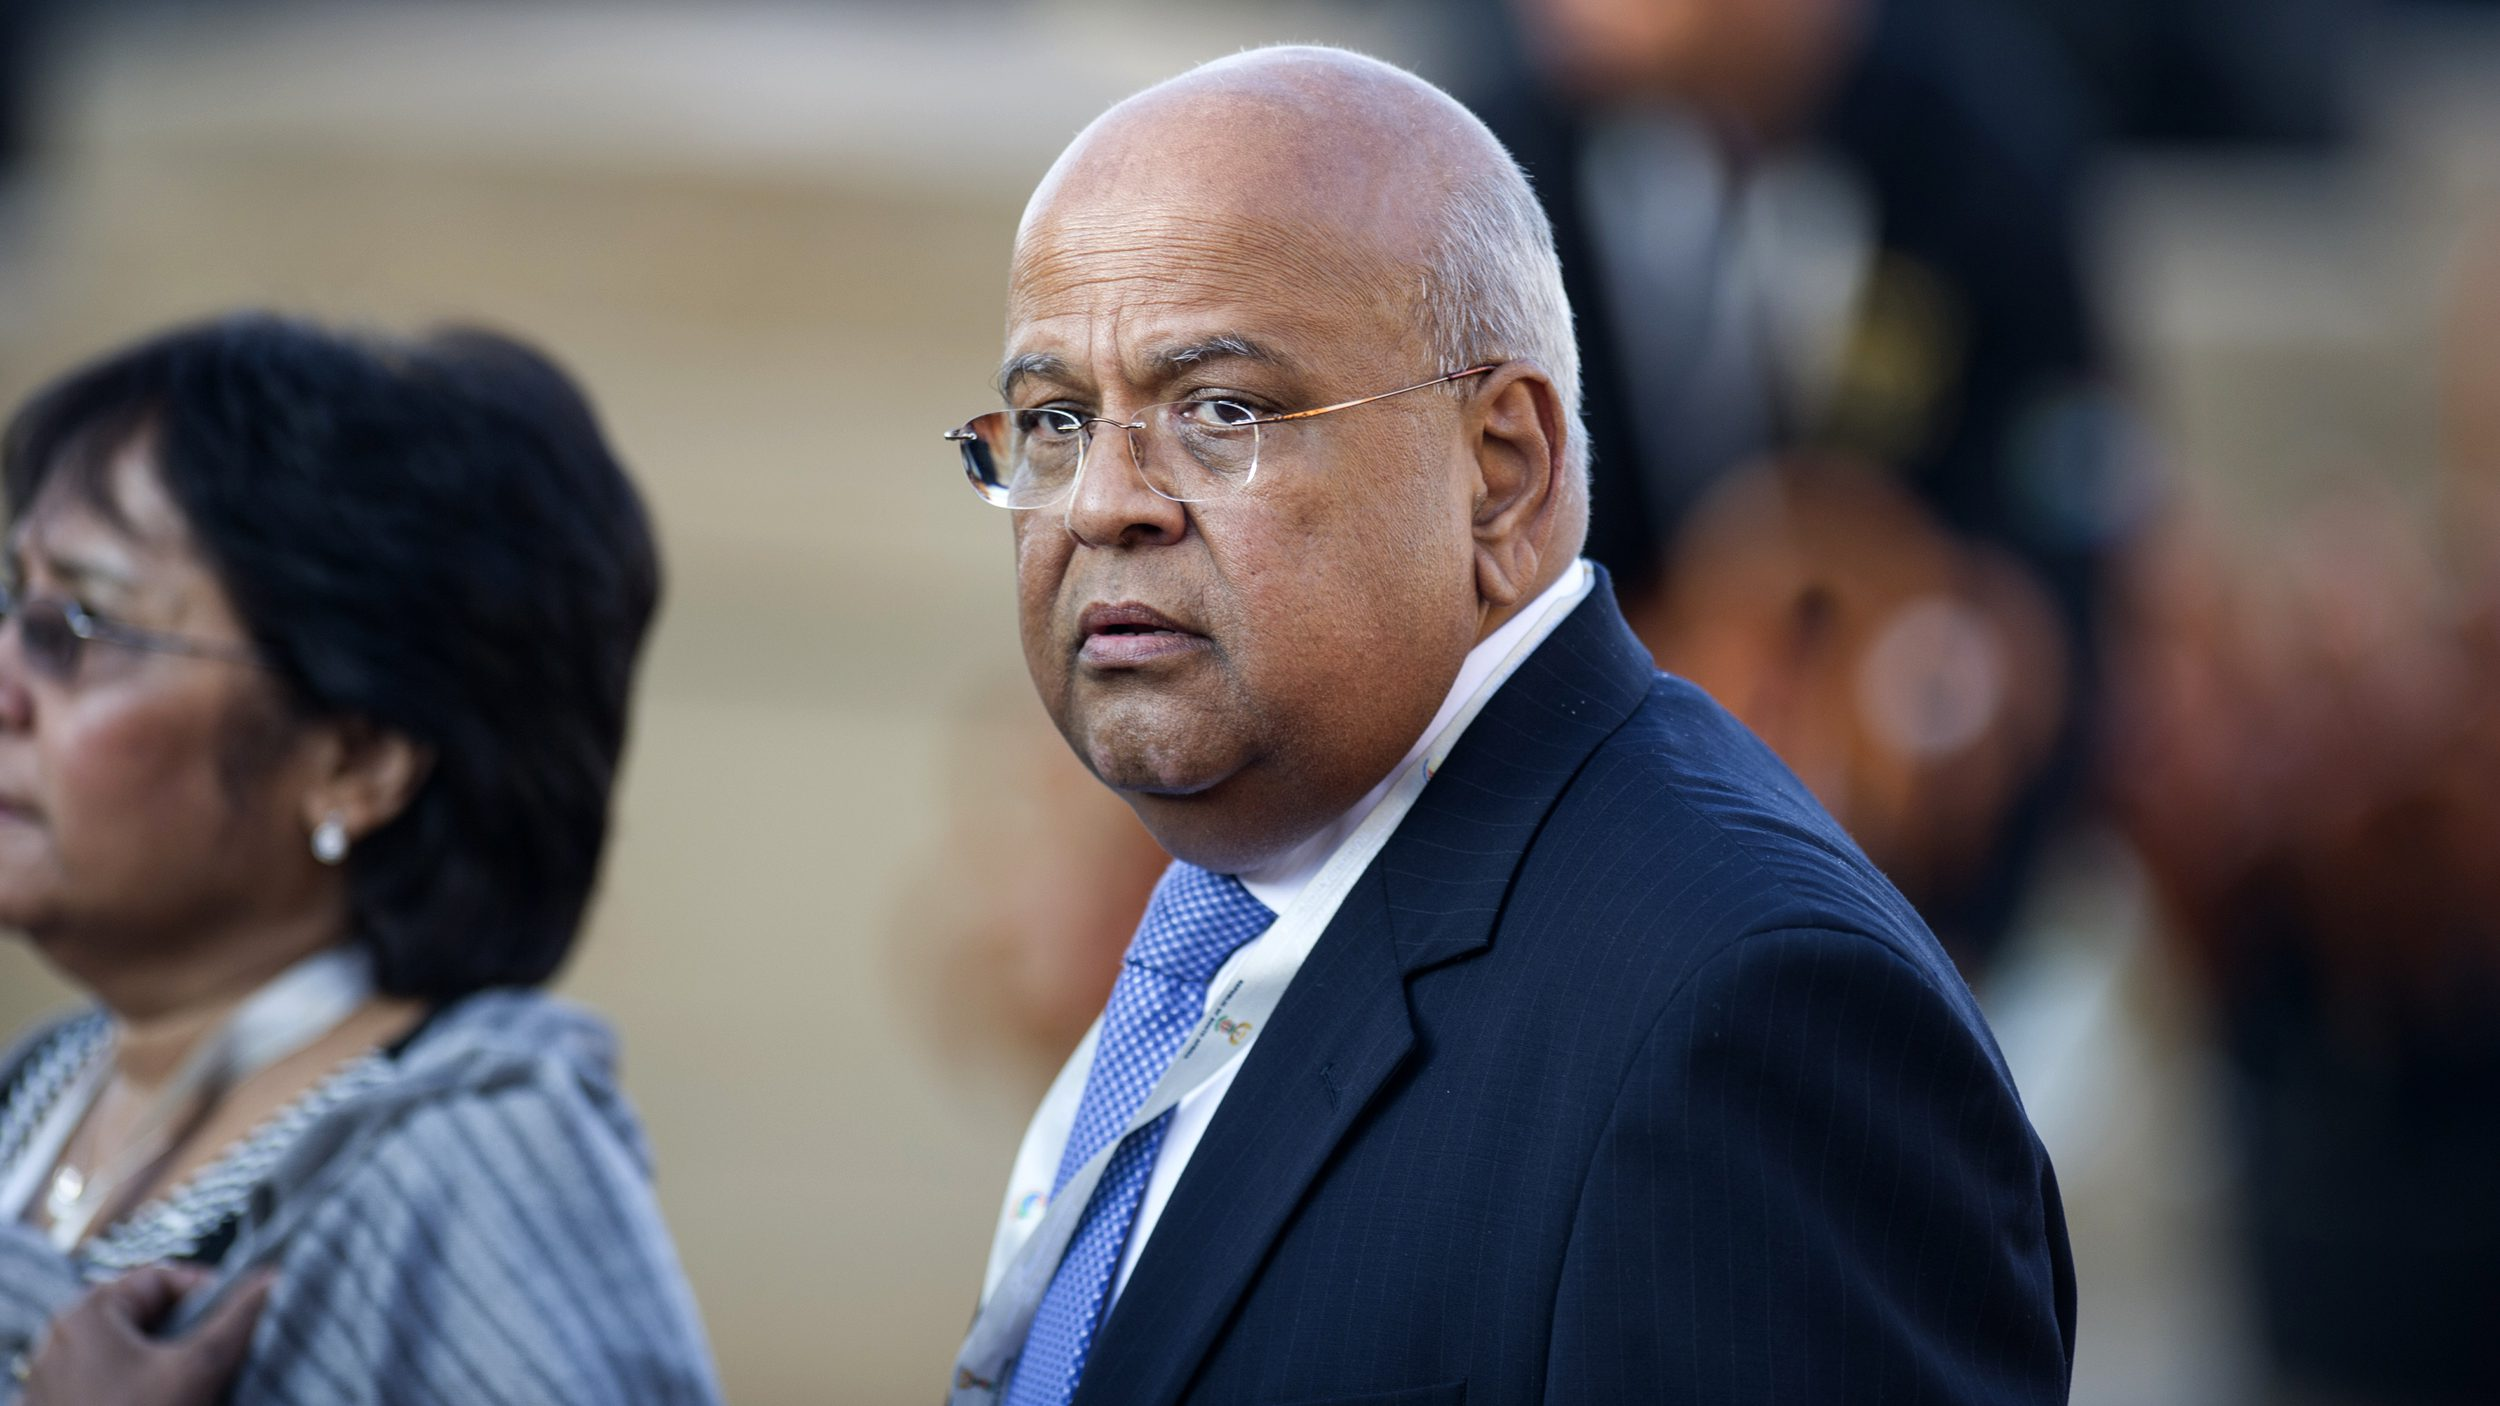 South African Minister of Finance Pravin Gordhan attends the inauguration ceremony of South African President Jacob Zuma at the Union Buildings in Pretoria